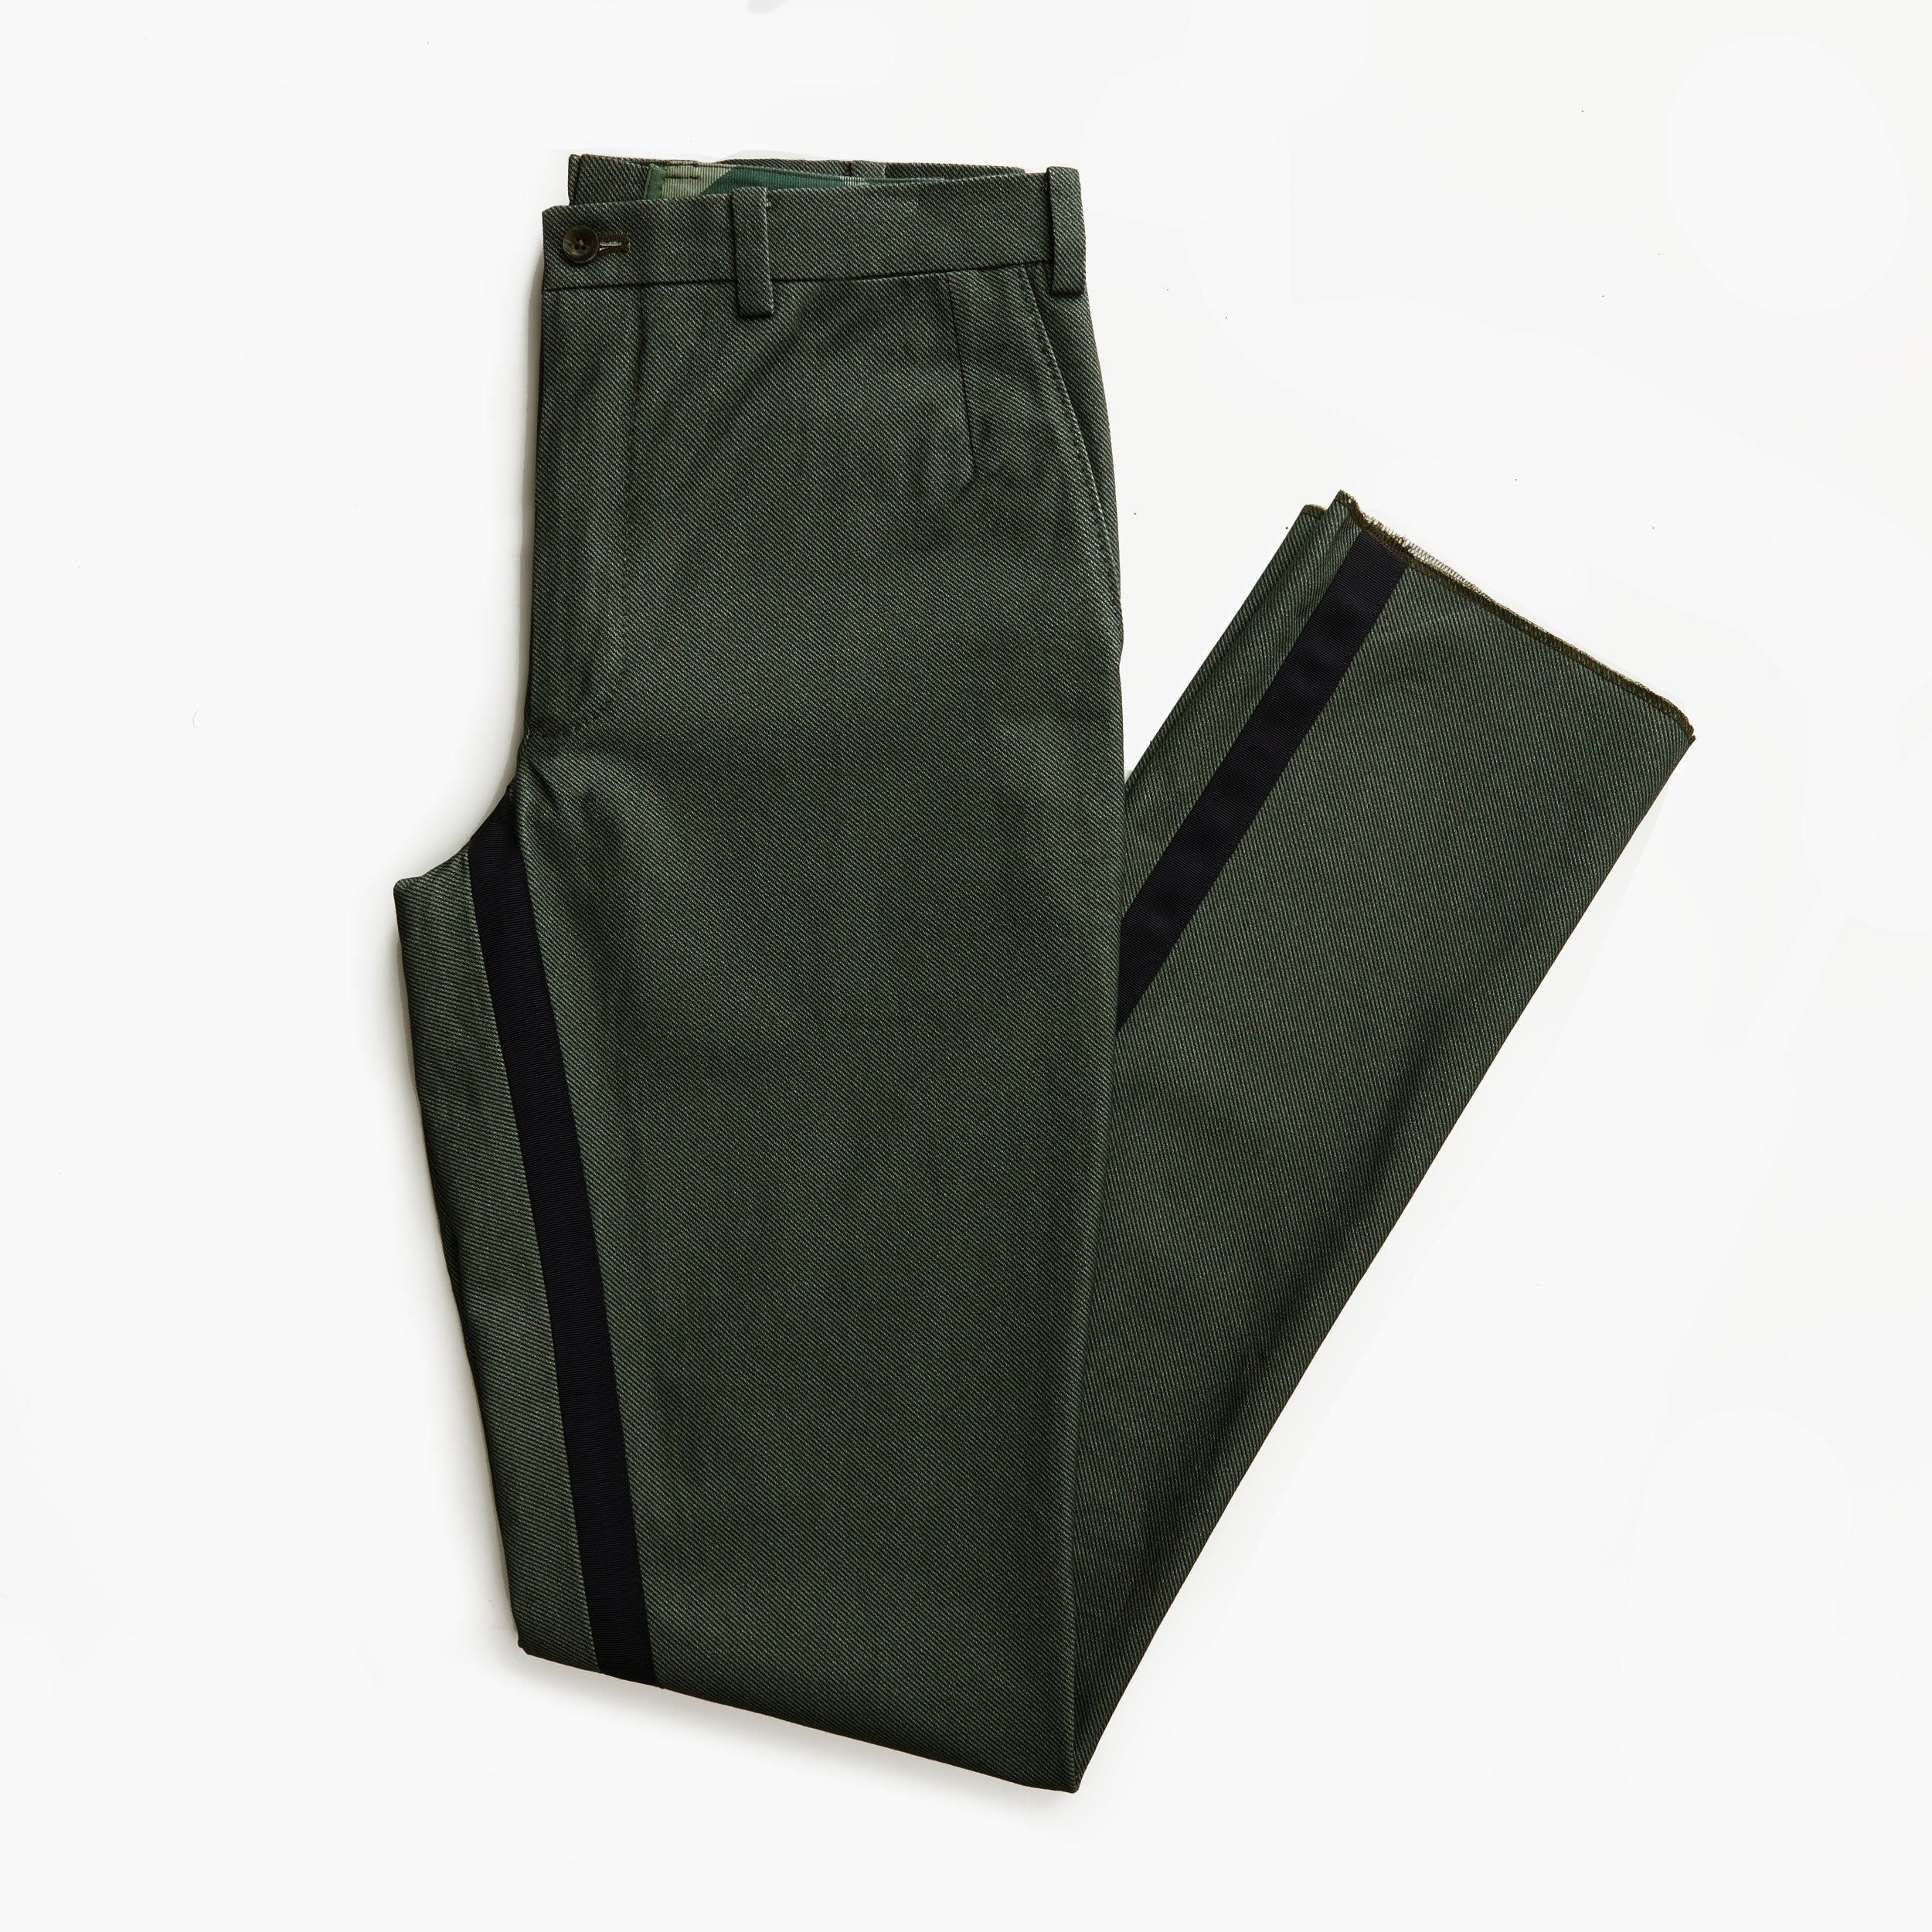 The New England Gray Twill Trouser